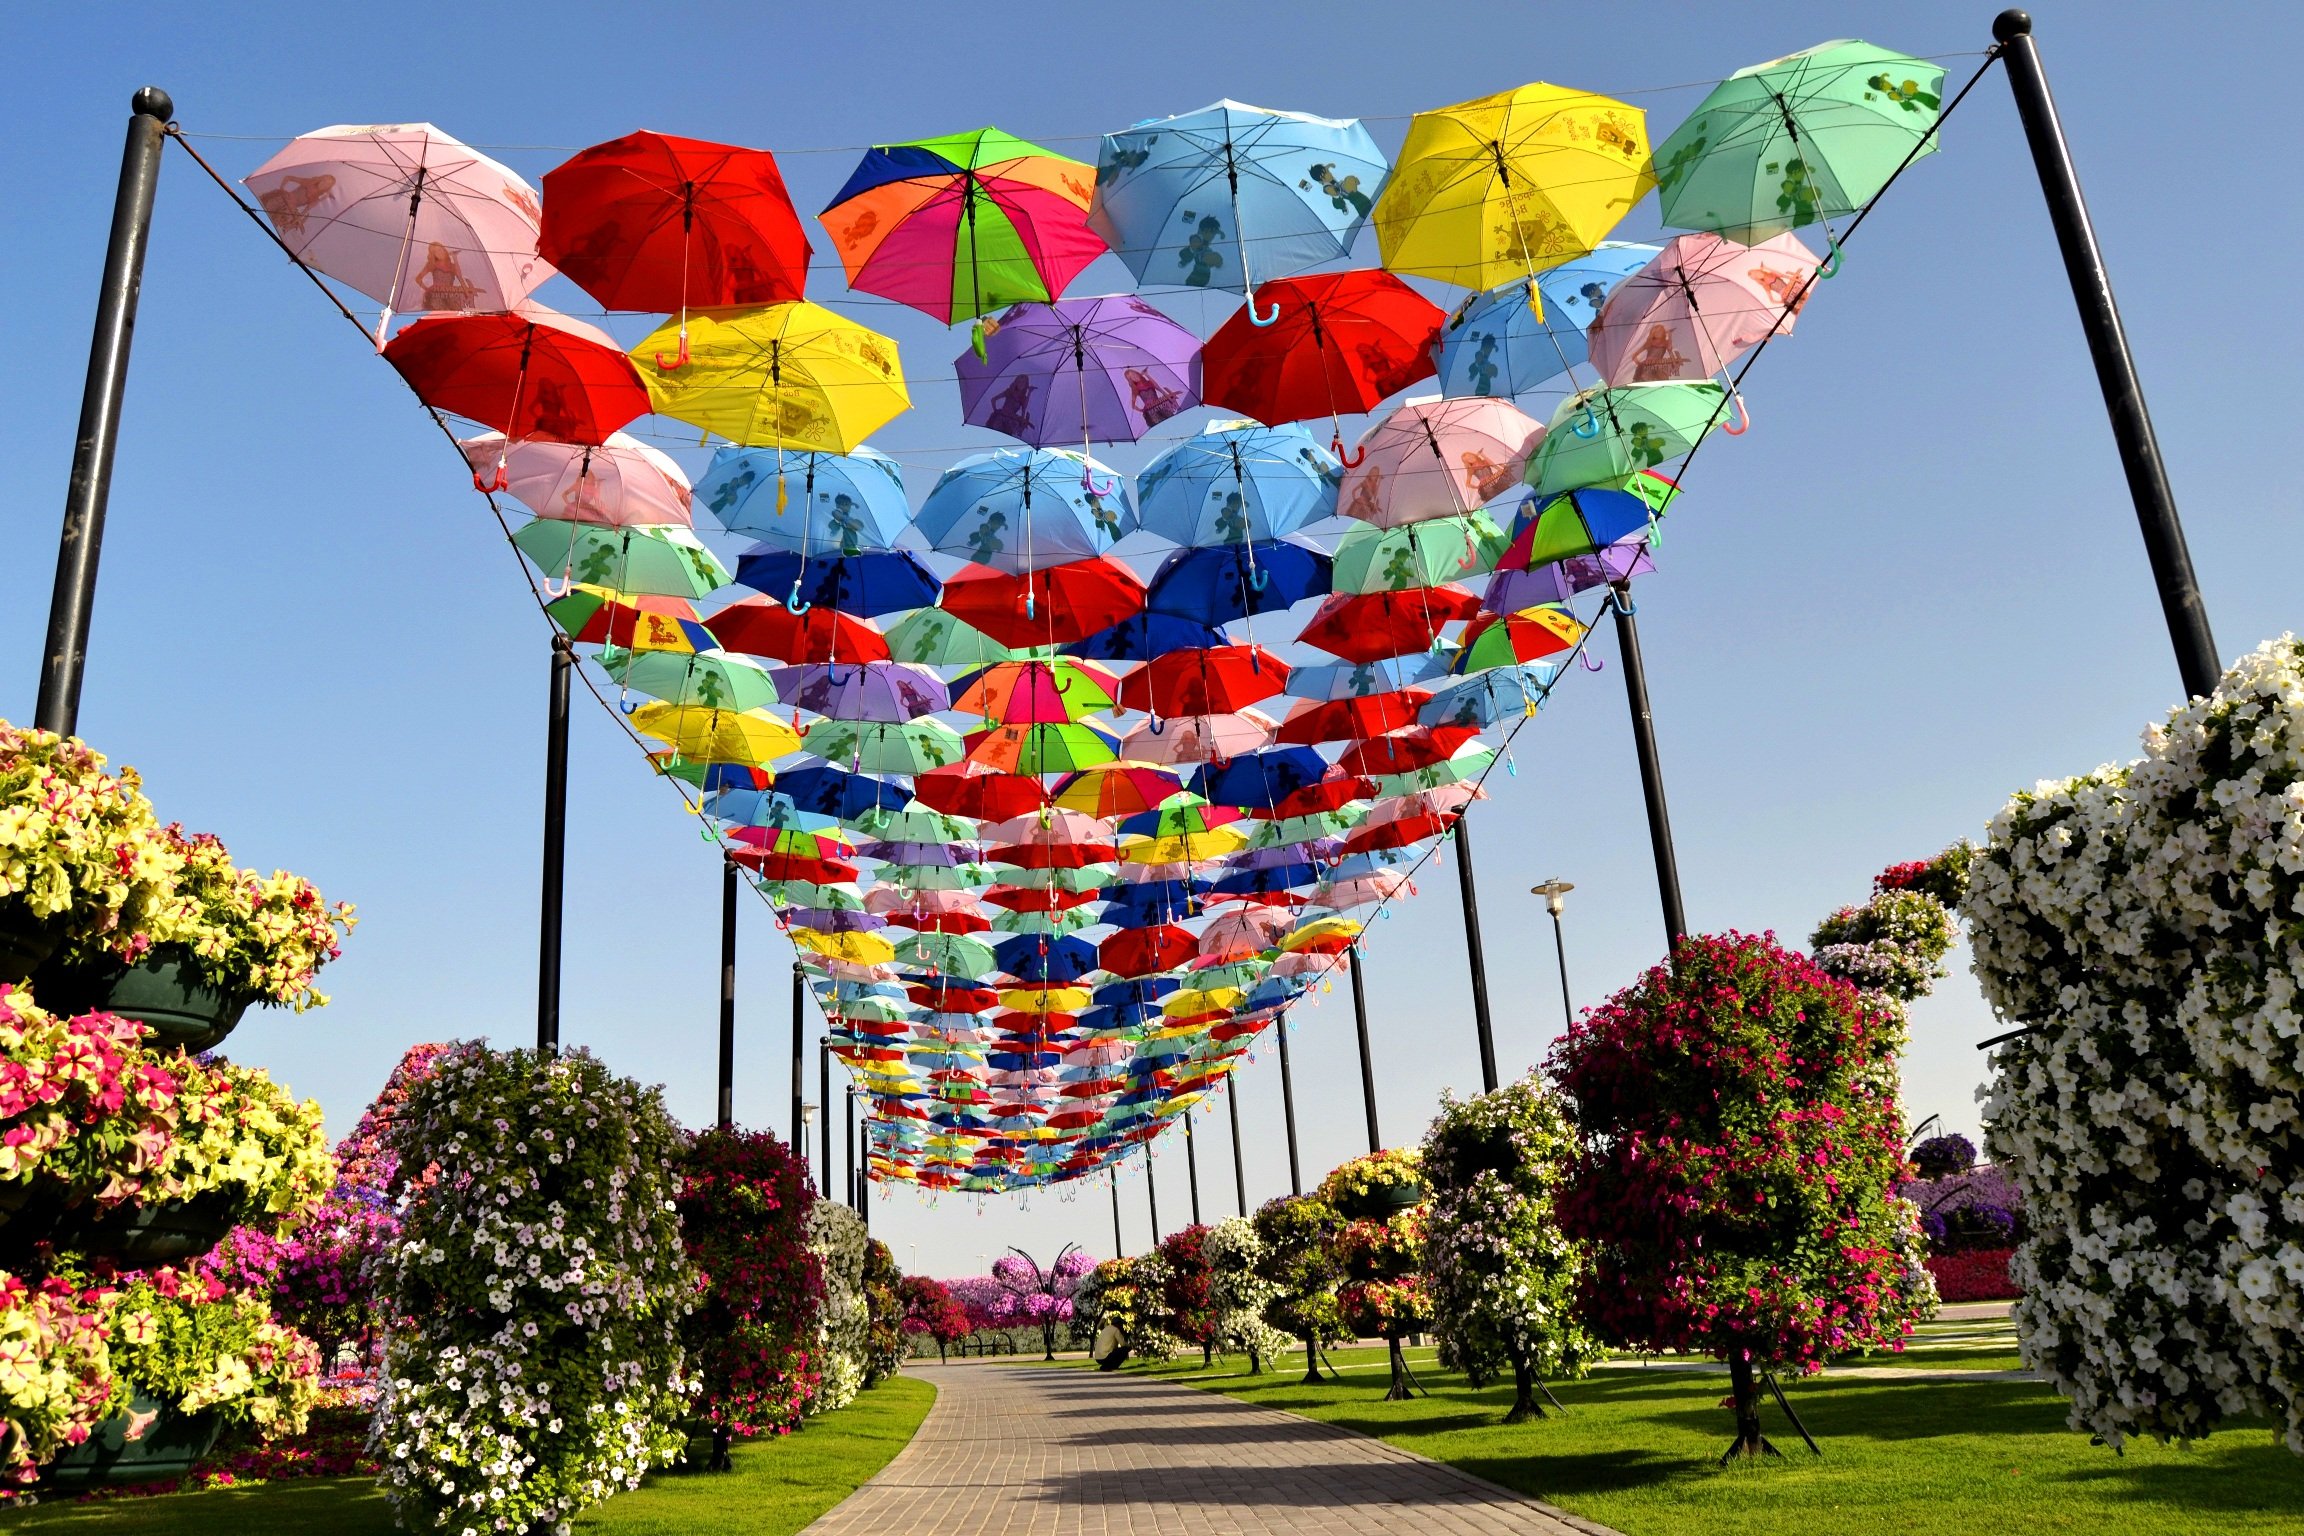 Dubai Miracle Garden Umbrella